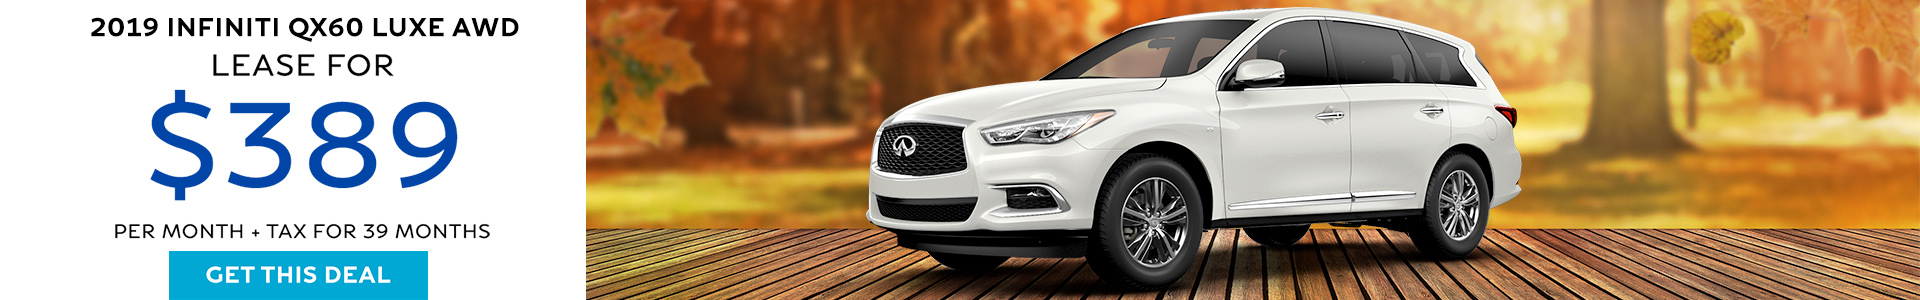 QX60 LUXE - Lease for $389